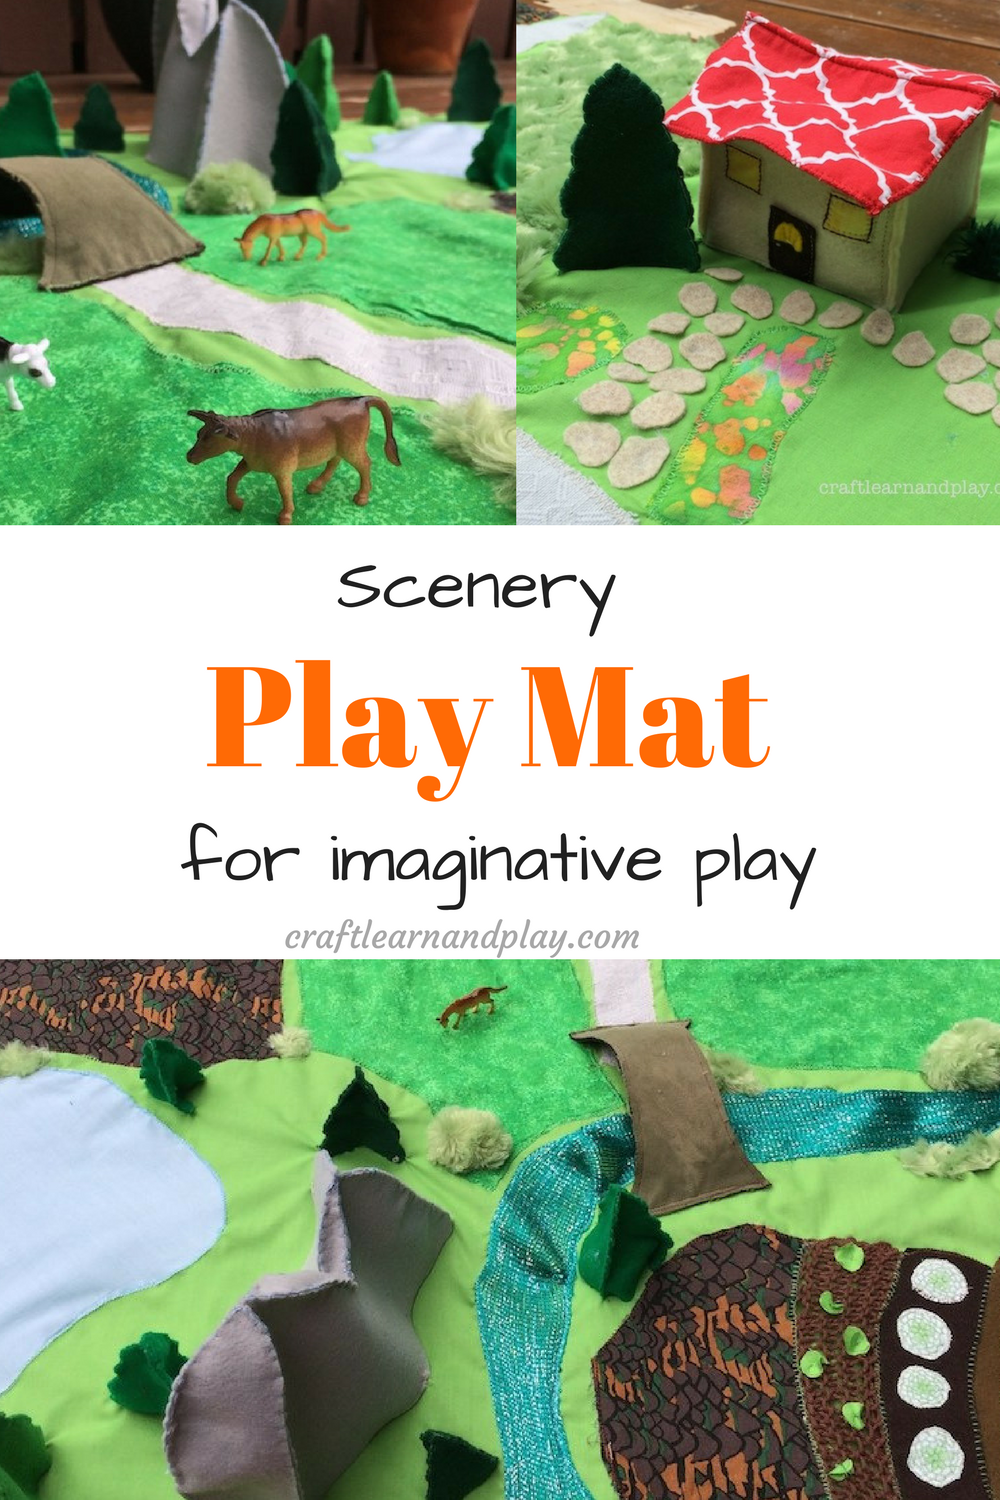 Brilliant scenery play mat for imaginative play. Perfect for kids 2-5 years old. This one is handcrafted and sewed from fabric scraps. Click to se more details.